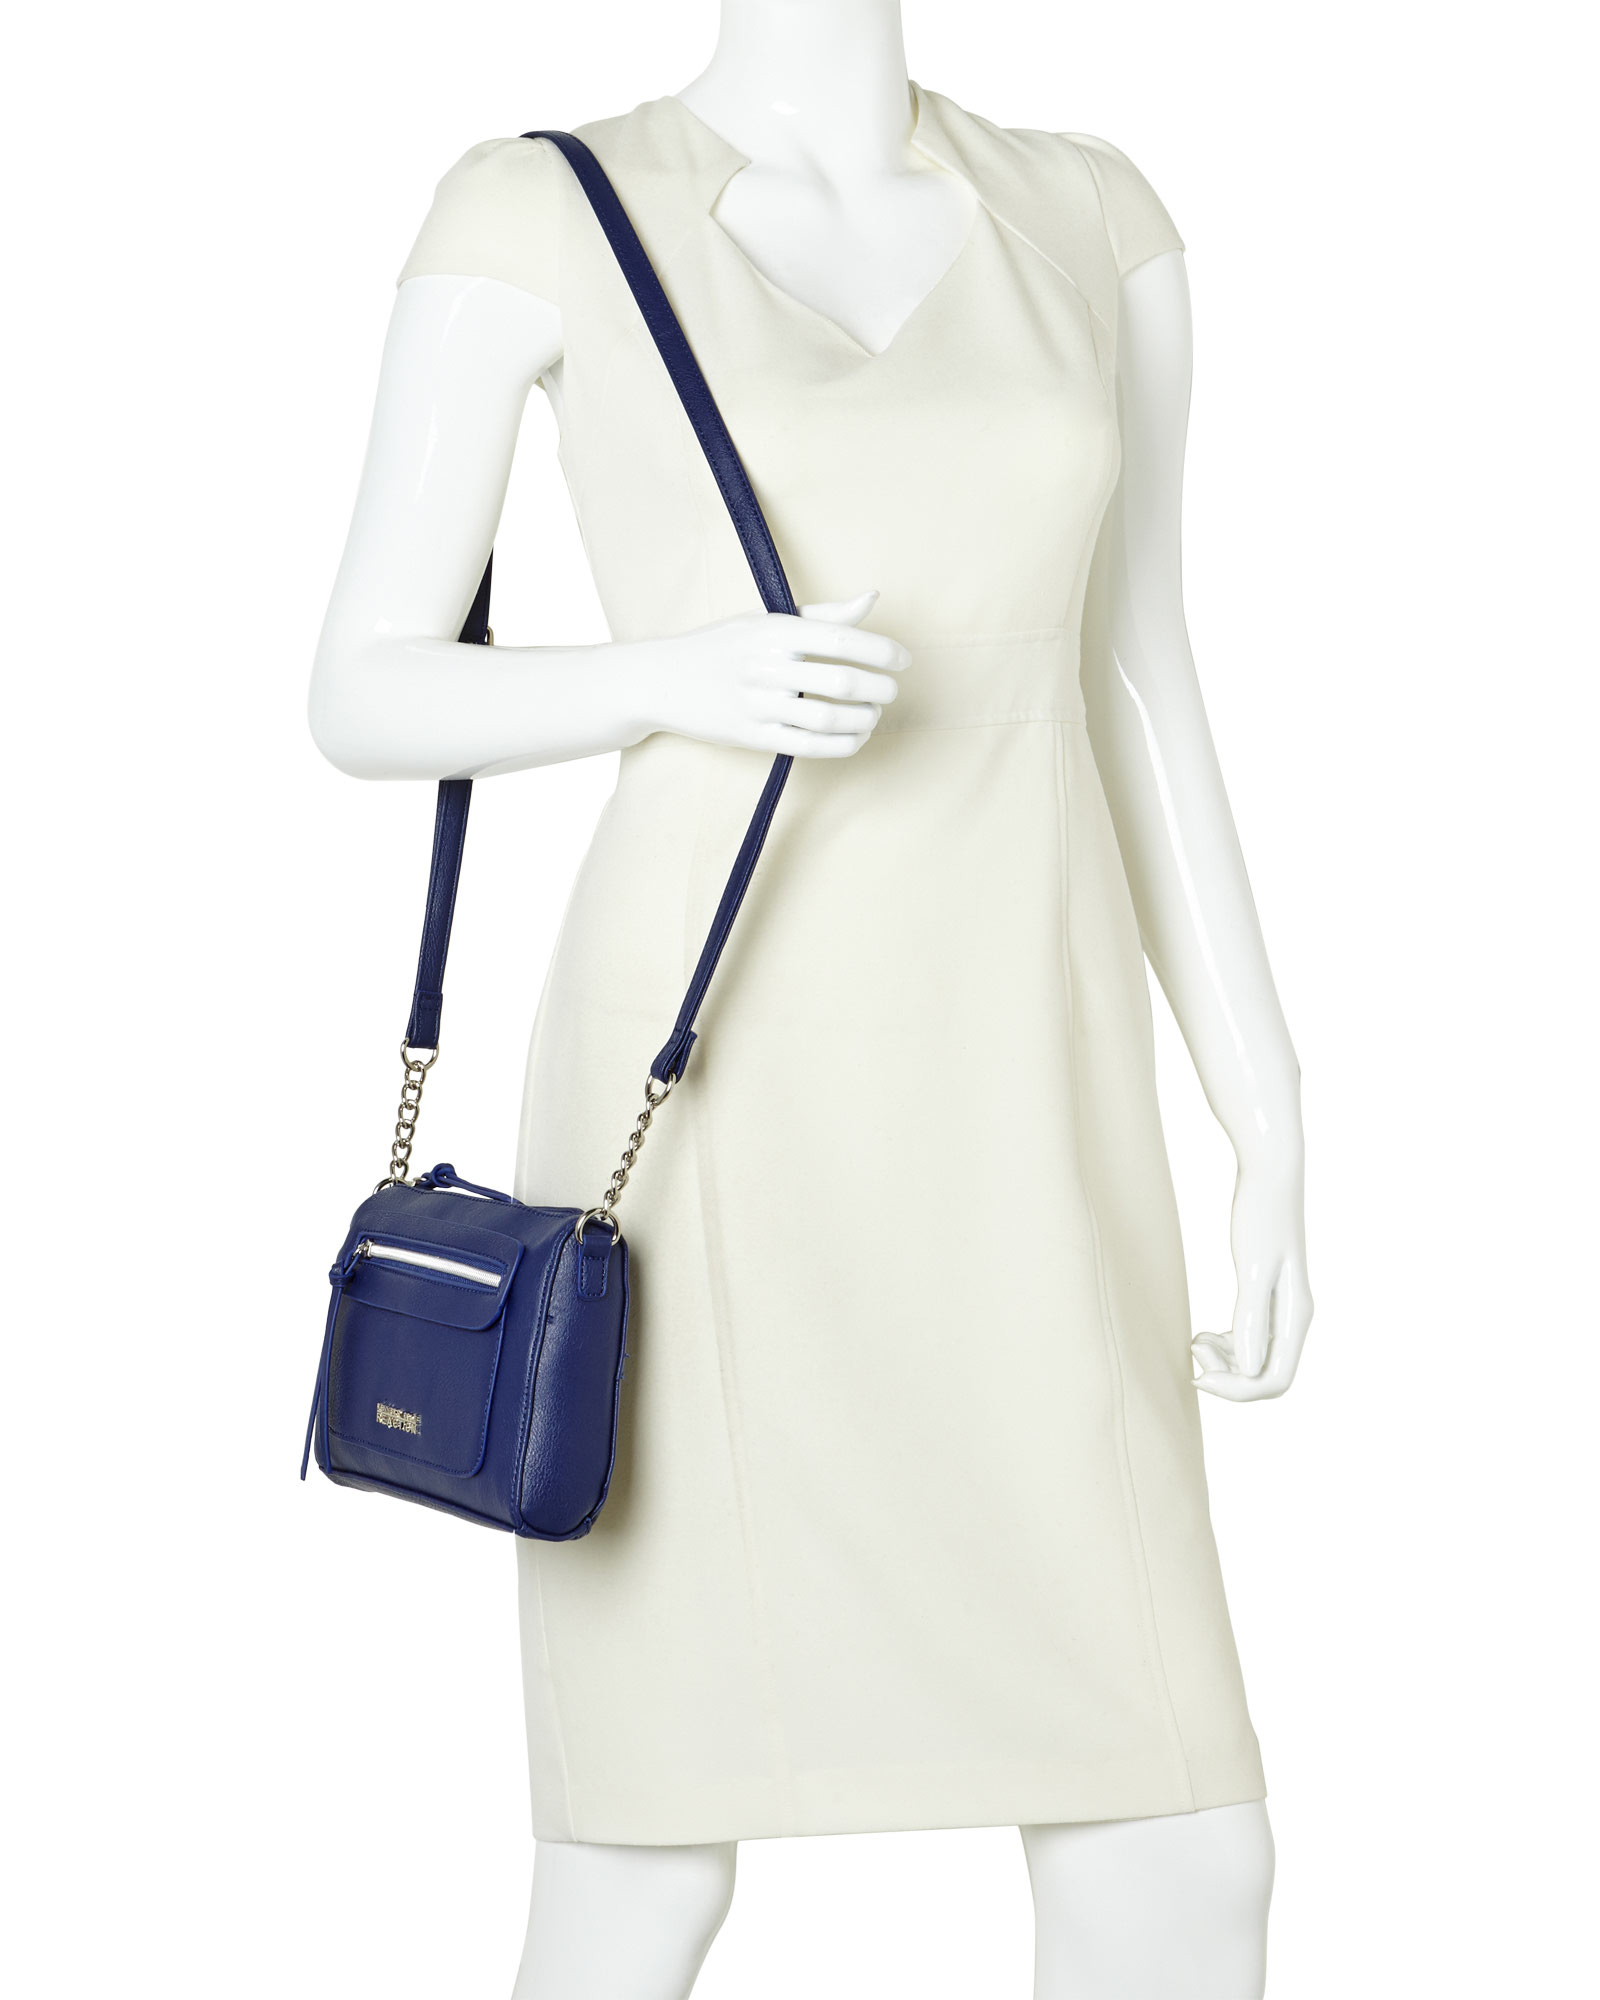 8018d249d Kenneth Cole Reaction Navy Town Mini Crossbody in Blue - Lyst